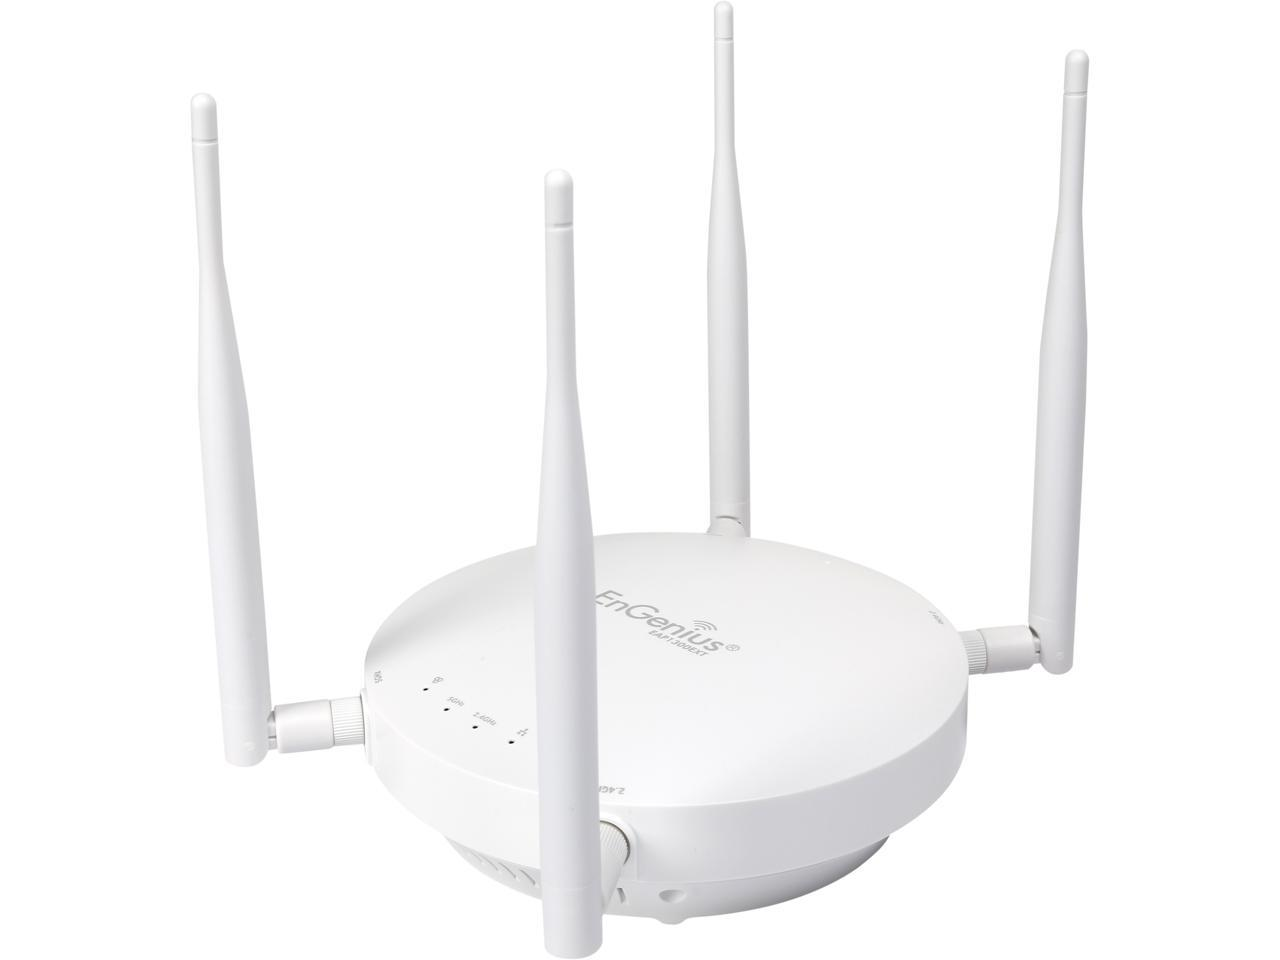 ENGENIUS ENH710EXT 802.11 DUAL RADIO 300MBPS POE WIRELESS OUTDOOR ACCESS POINT